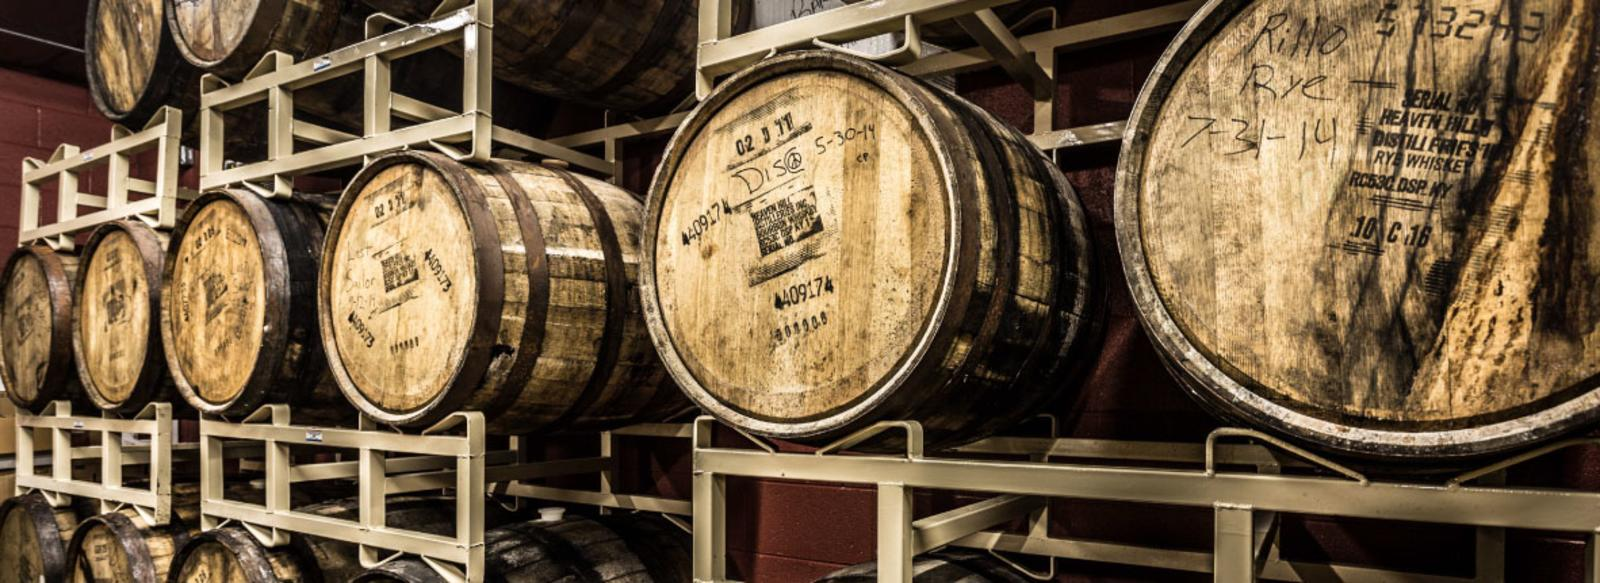 South-Shore-Brewery-Trail-barrels